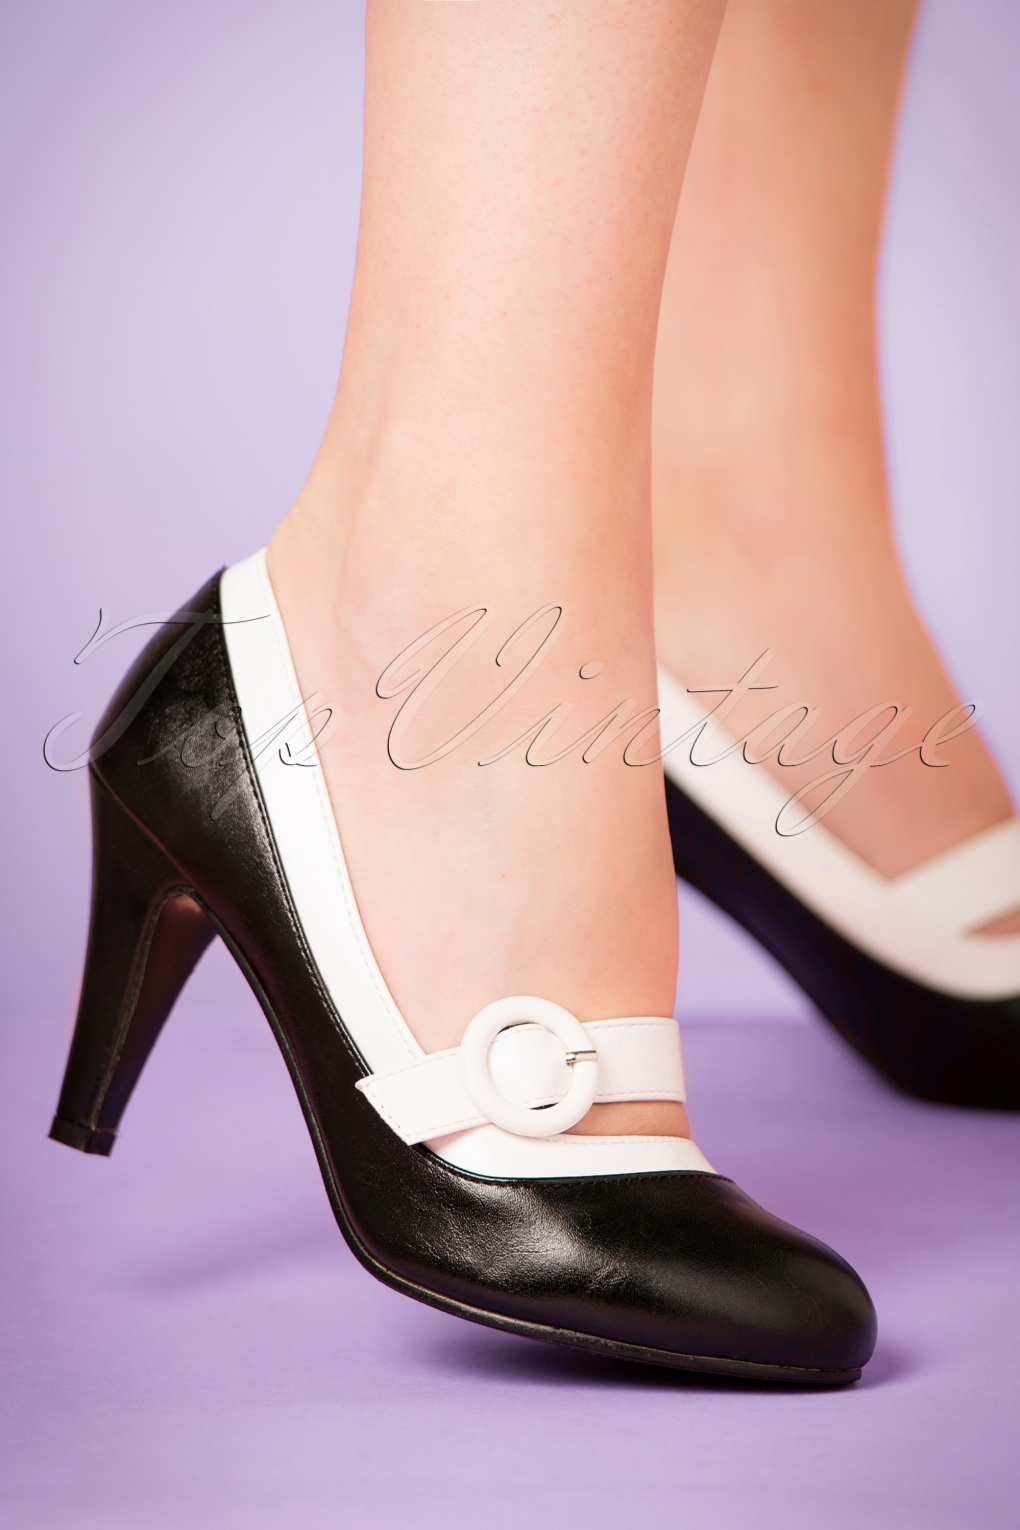 Vintage Style Shoes, Vintage Inspired Shoes 60s Beatrix High Heel Pumps in Black and White £42.67 AT vintagedancer.com